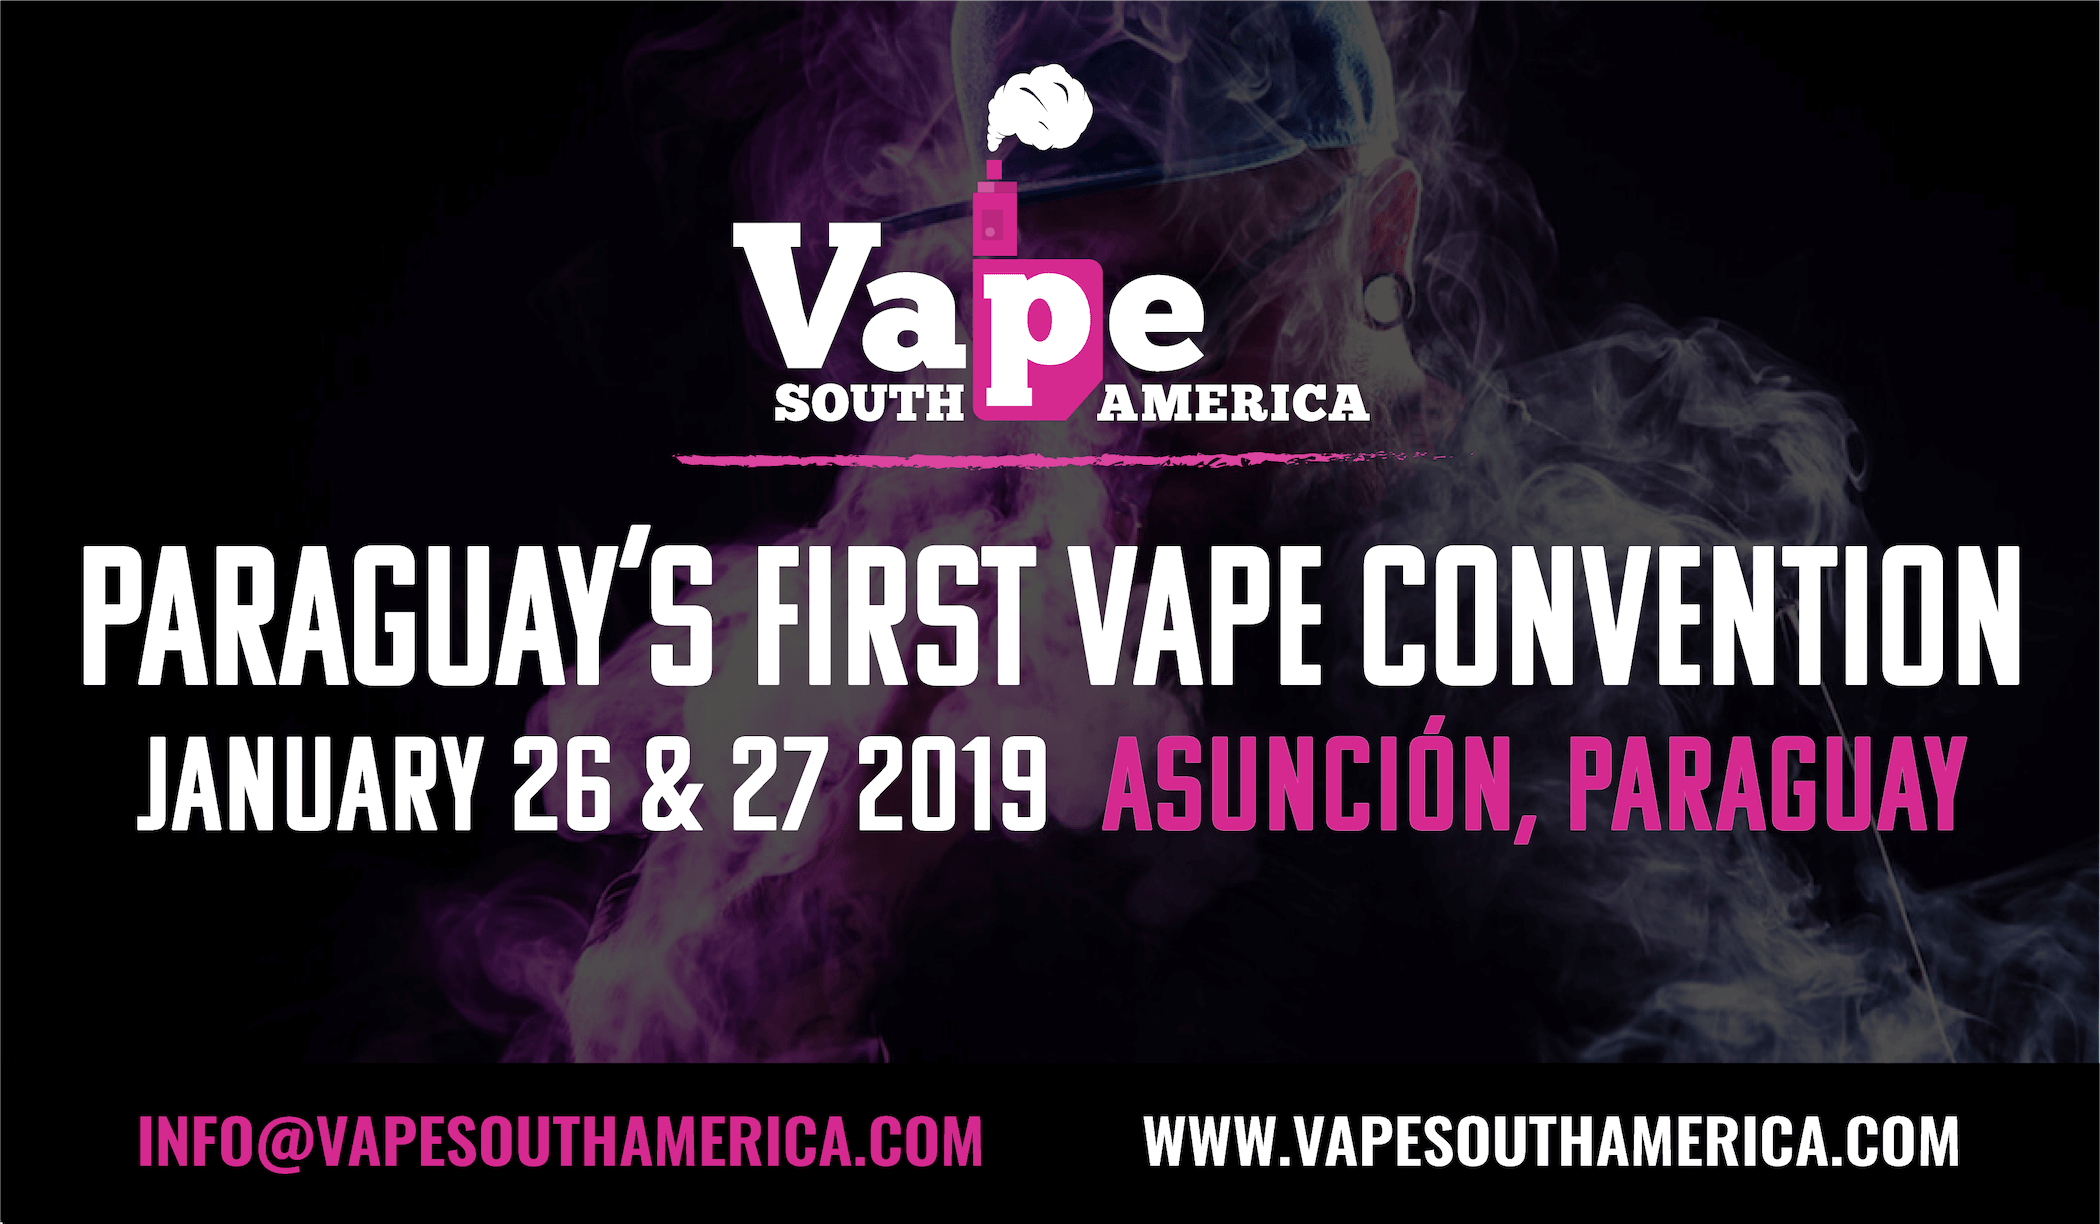 Vape South America Expo Paraguay 2019 - Vape Conventions & Vaping Events 2019